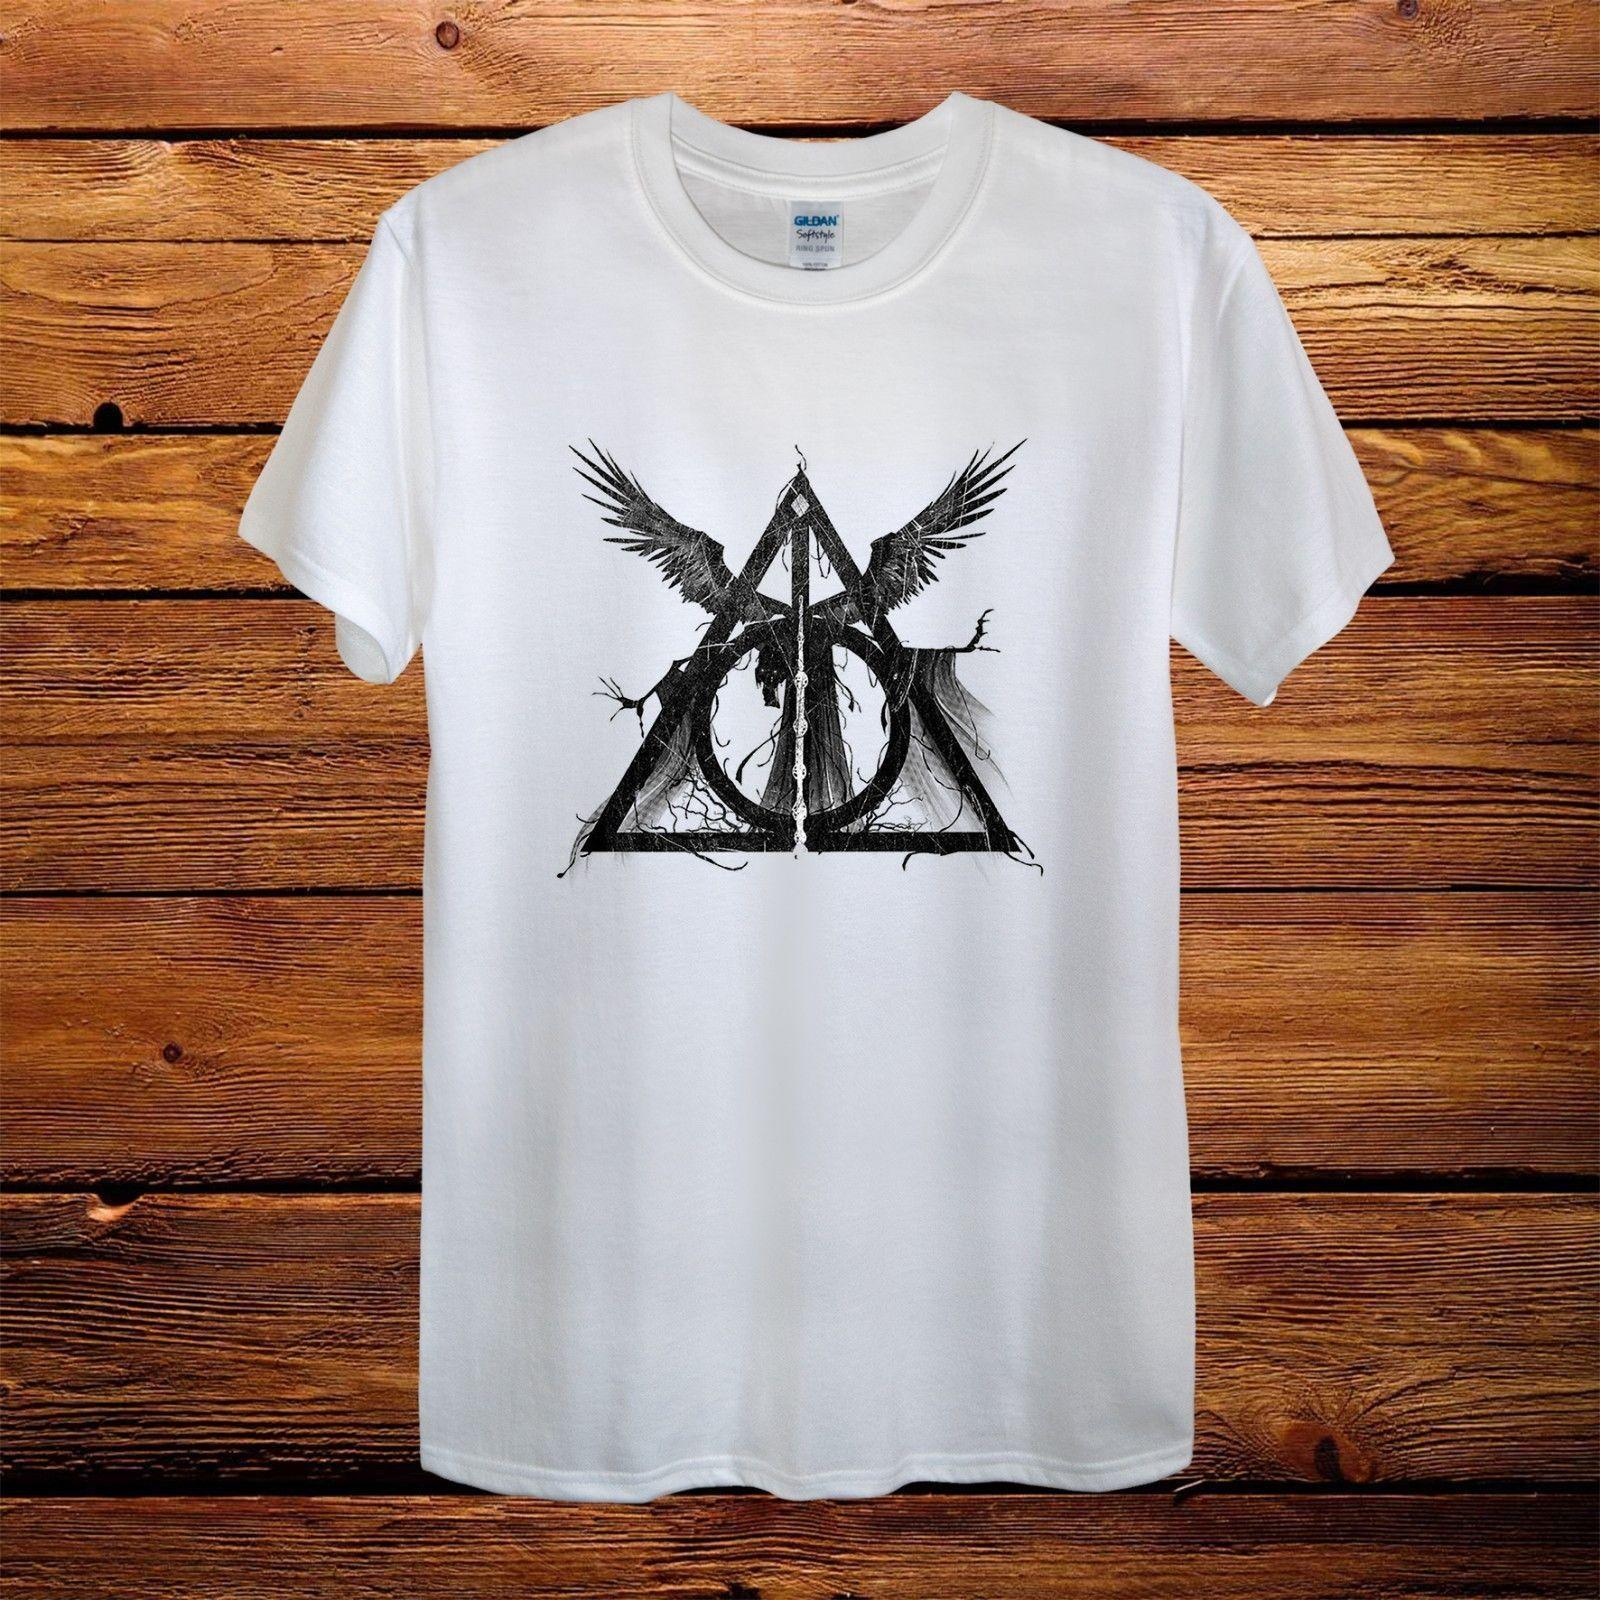 c2037ad0 Harry Potter Sign New Design T Shirt Funny Shirts Dress Shirt From  Crazylikeafawkes, $11.01| DHgate.Com